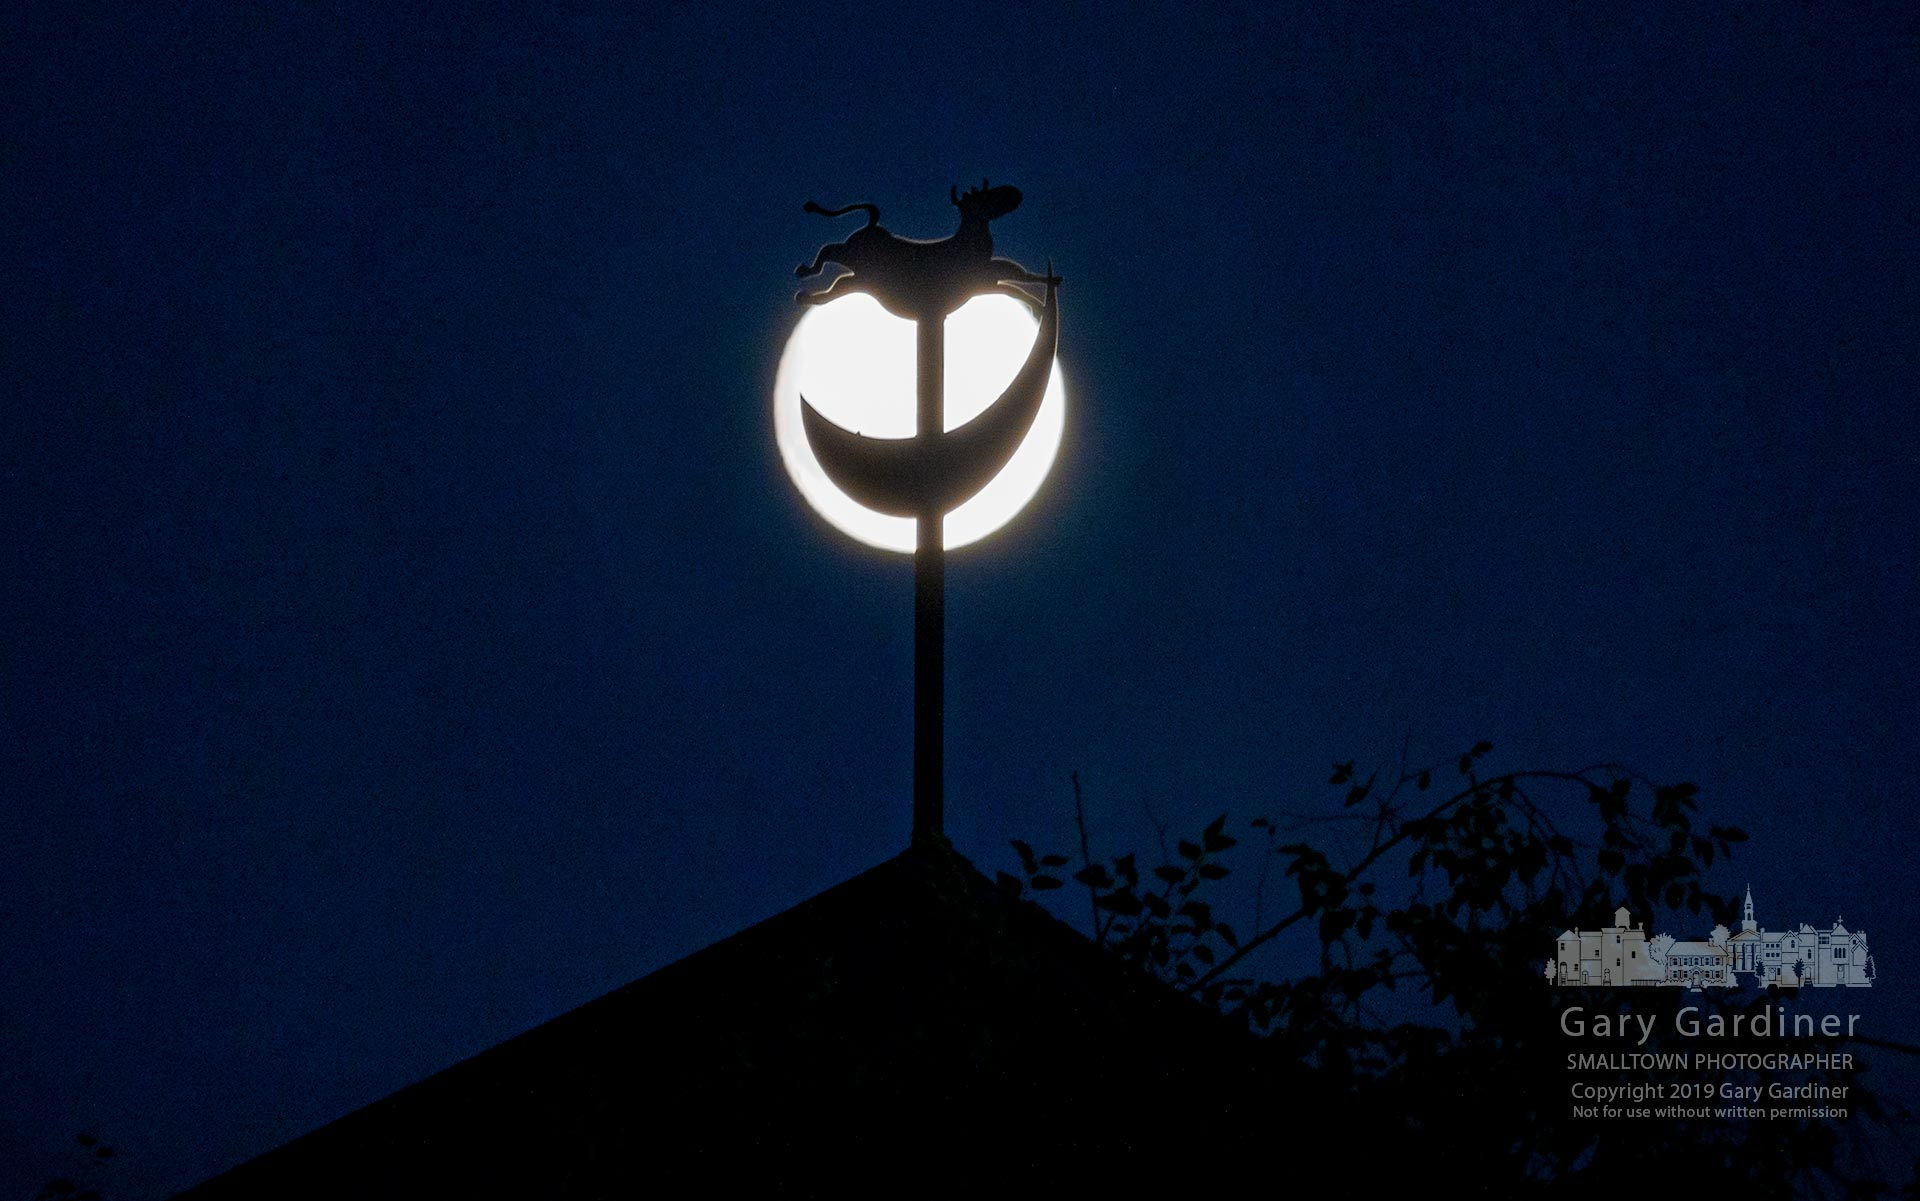 The decorative weather vane/lightning rod at the peak of the roof at Nationwide Childrens Hospital in Westerville is silhouetted against a nearly full moon. My Final Photo for Sept. 12, 2019. (Editors Note: This was practice for tomorrow's full moon but the forecast is for 75% cloud cover about the same time I'd shoot this. Didn't want to waste it.)